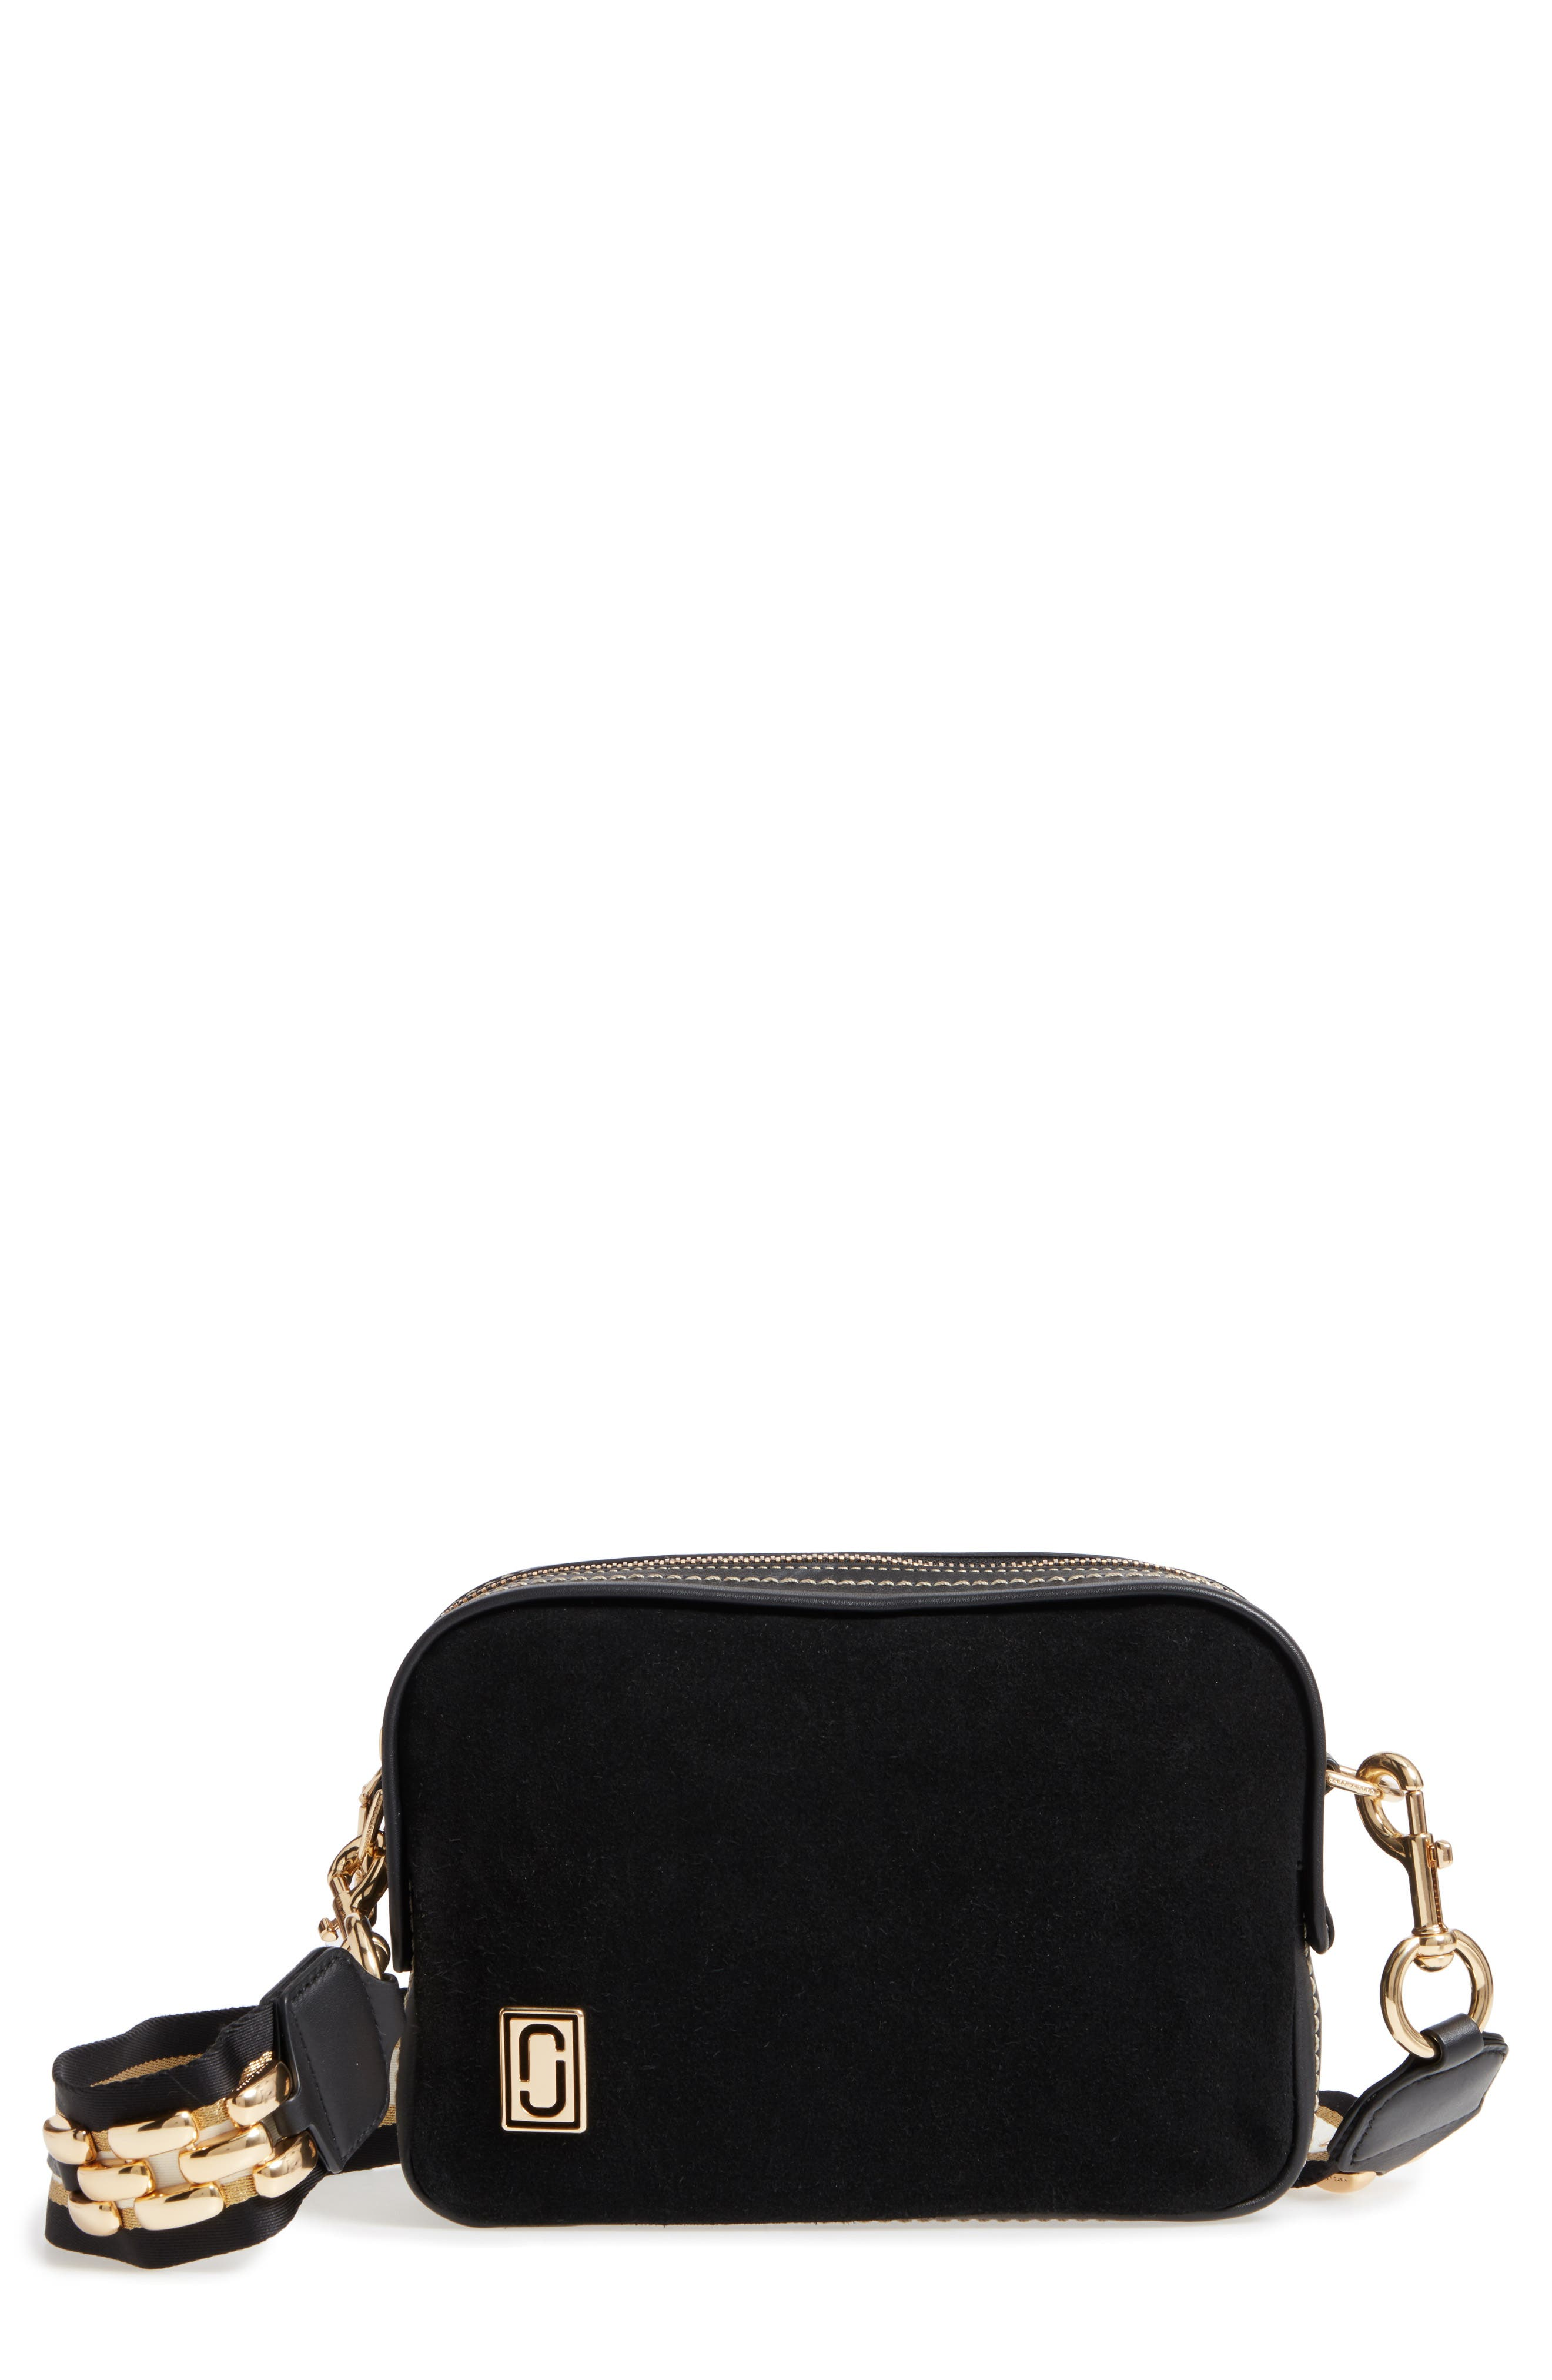 MARC JACOBS The Squeeze Suede & Leather Shoulder Bag